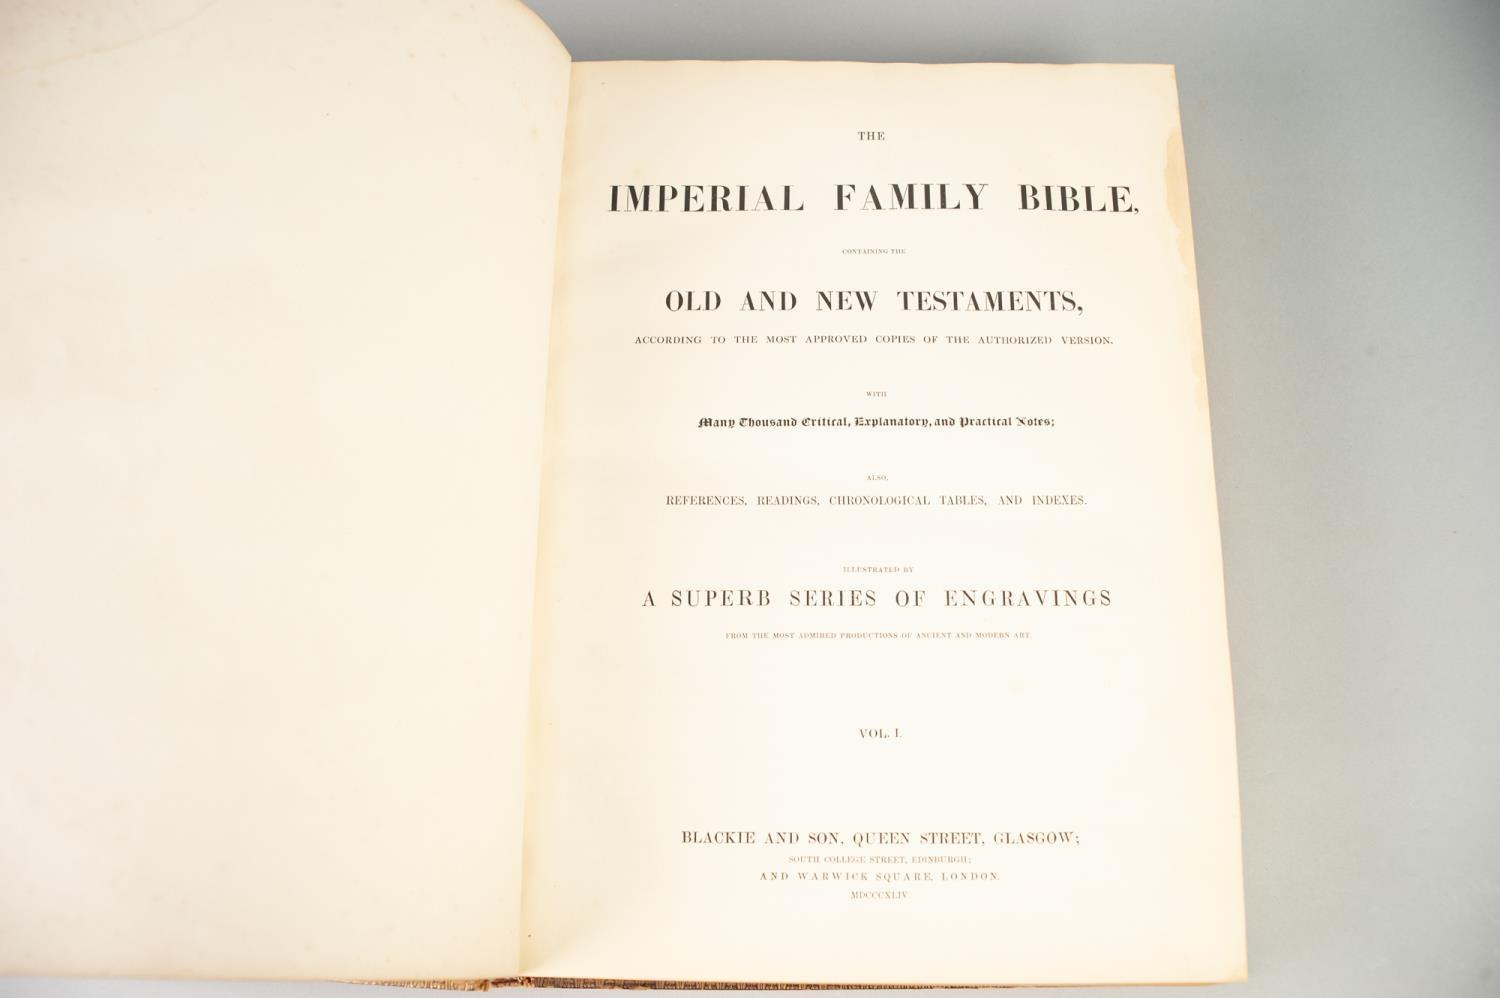 Lot 22 - THE IMPERIAL FAMILY BIBLE, containing the Old and New Testament, 2 large volumes, published by